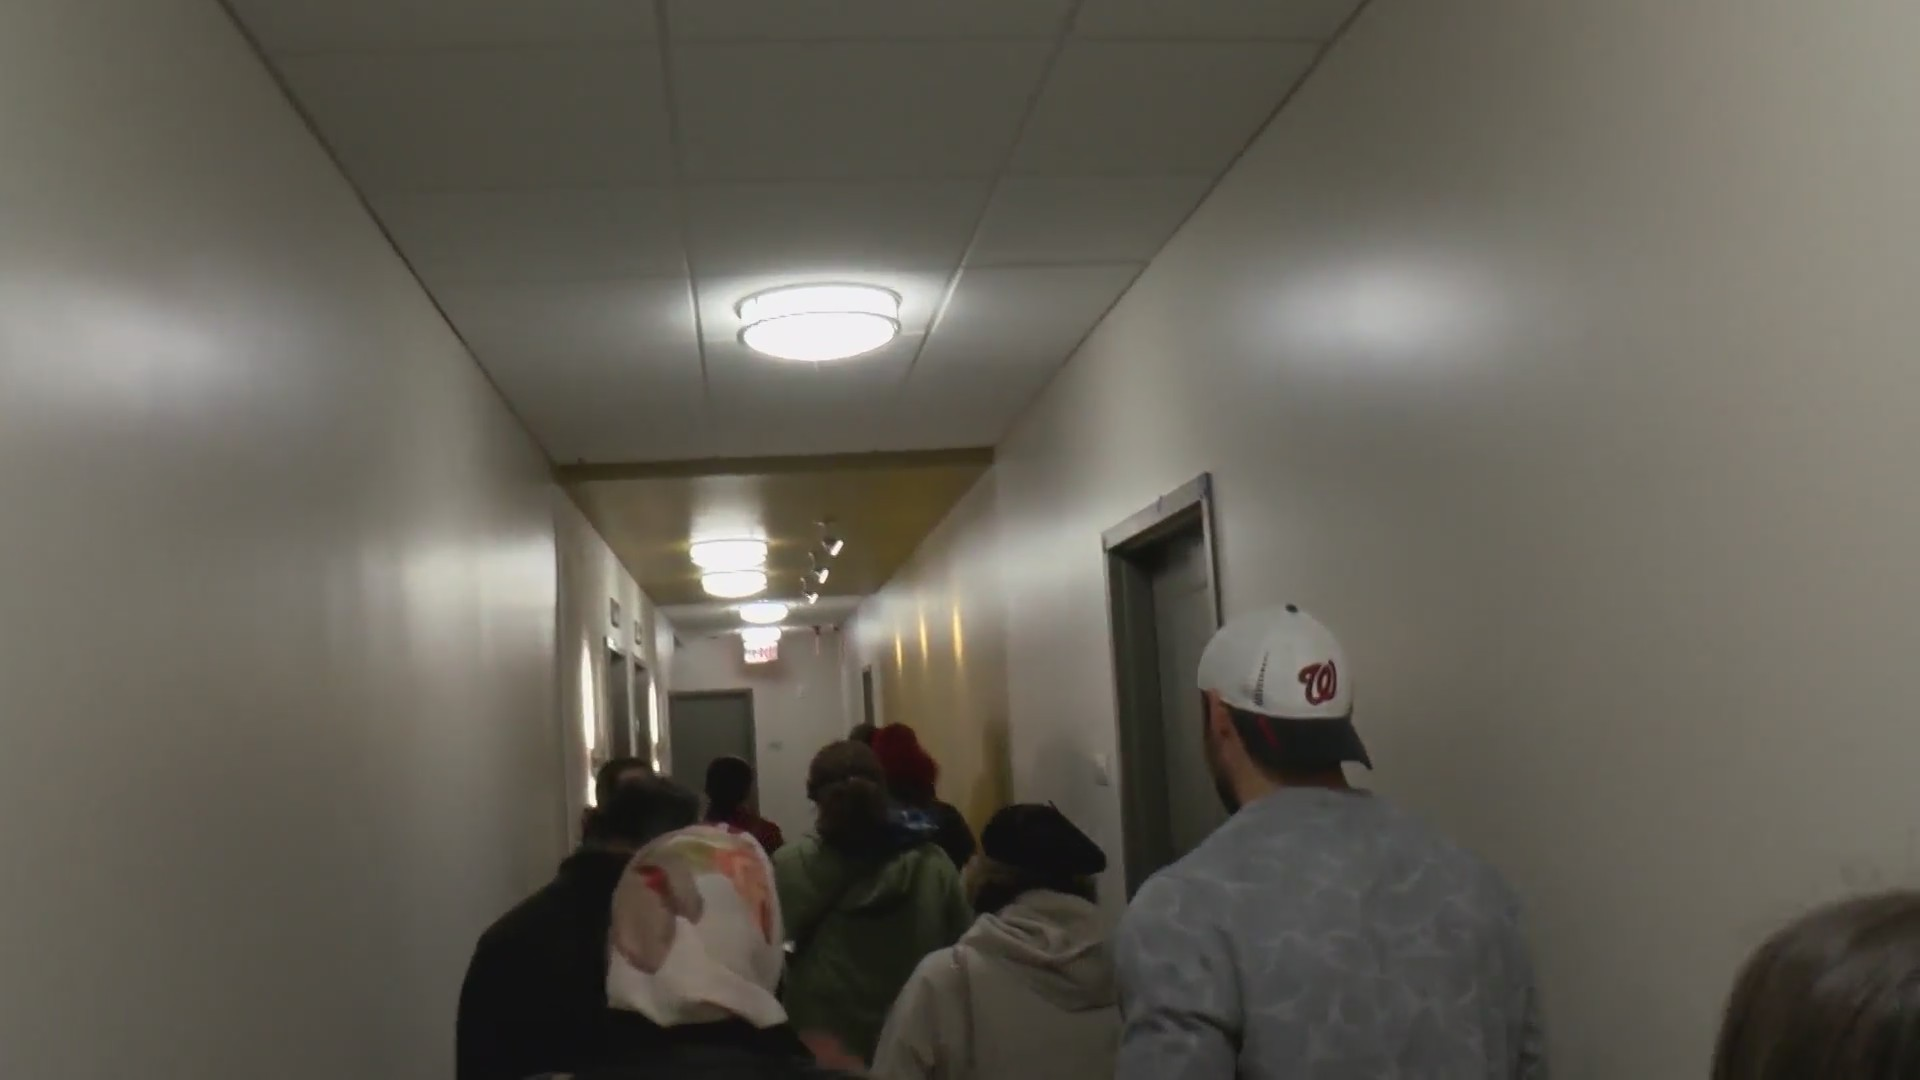 AFFORDABLE HOUSING TOUR